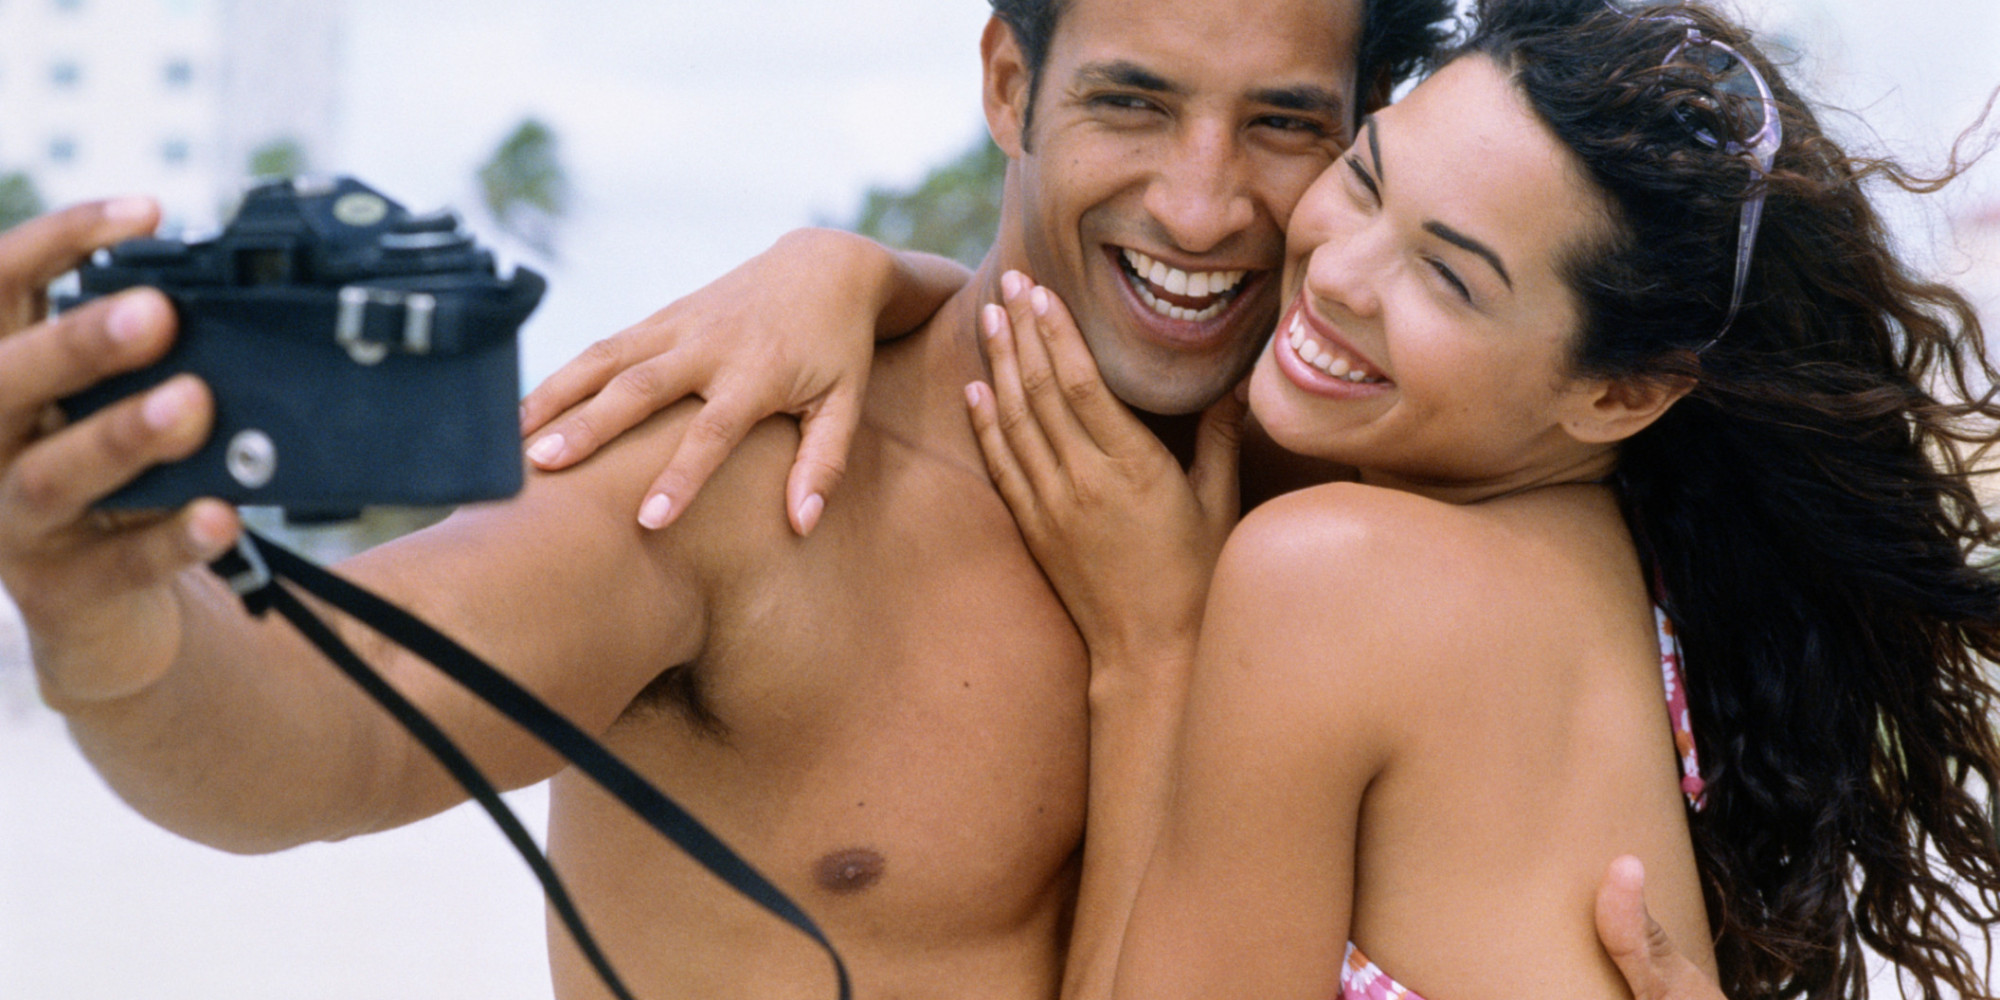 10 Ways To Add Romance Your Honeymoon